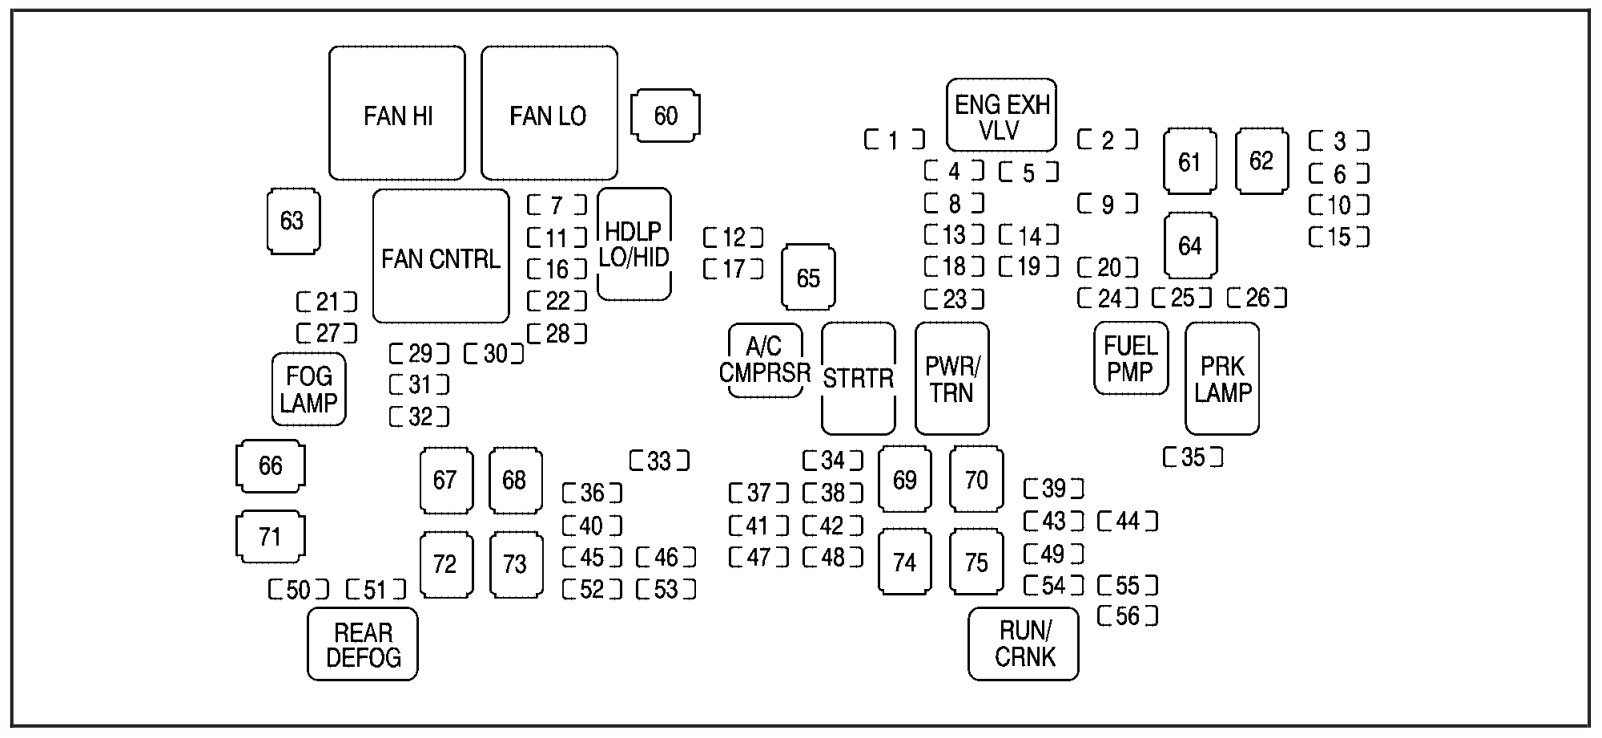 hight resolution of 2010 tahoe fuse diagram wiring diagram inside 2010 tahoe fuse box diagram